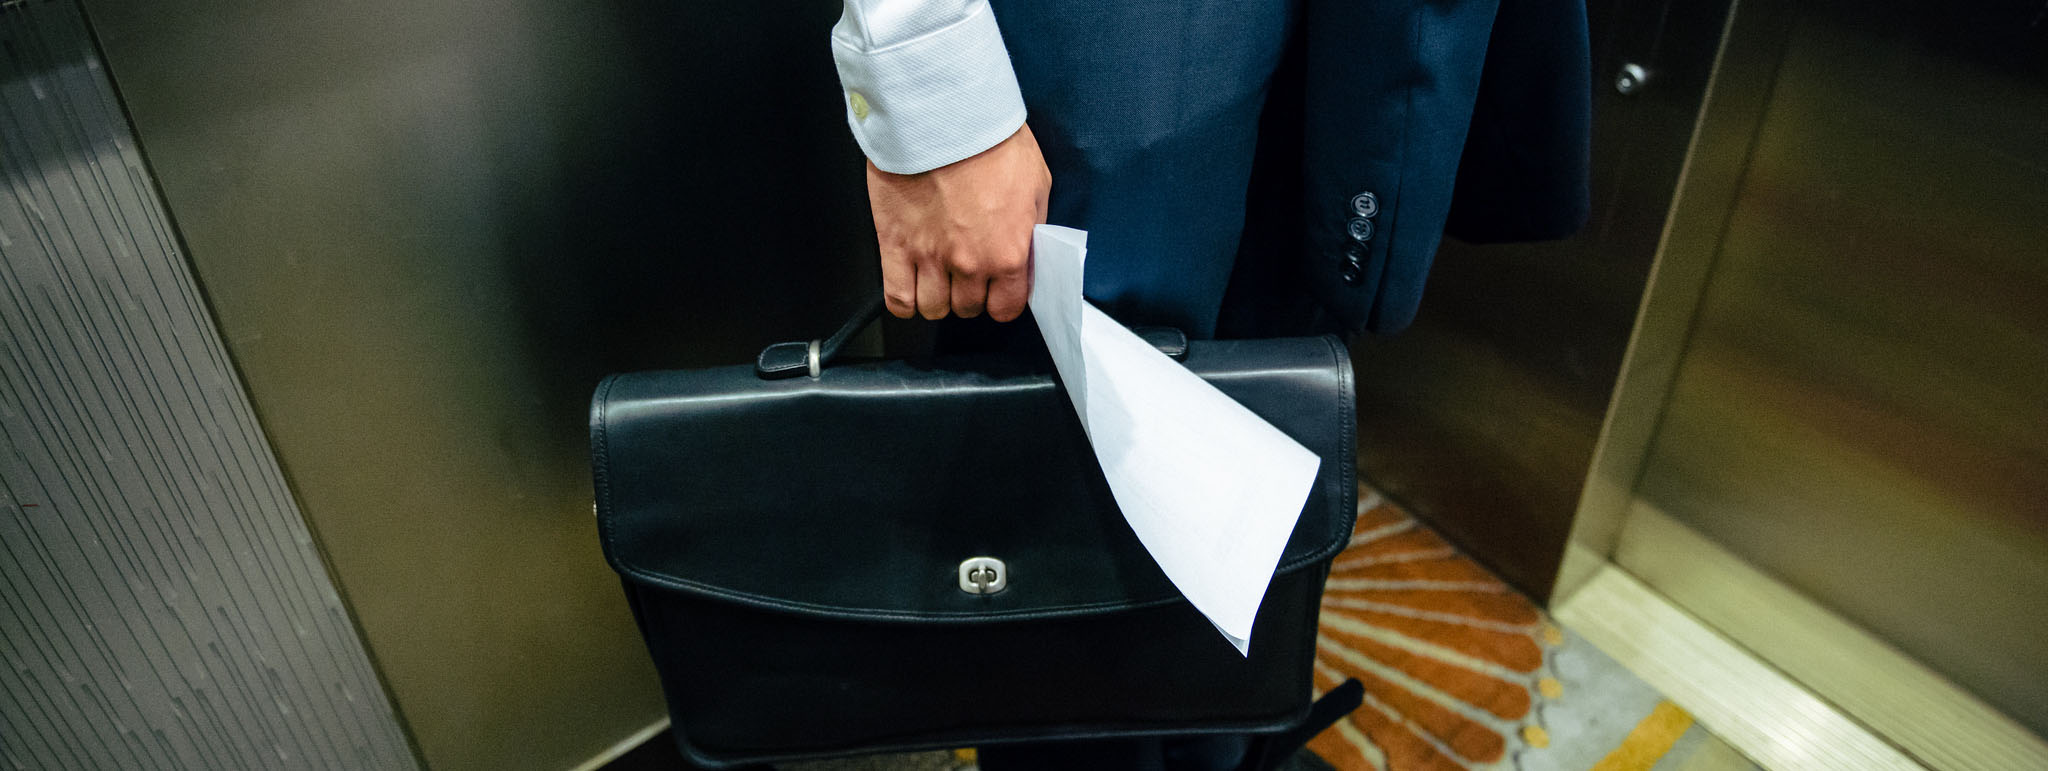 Law student holding a briefcase on an elevator.